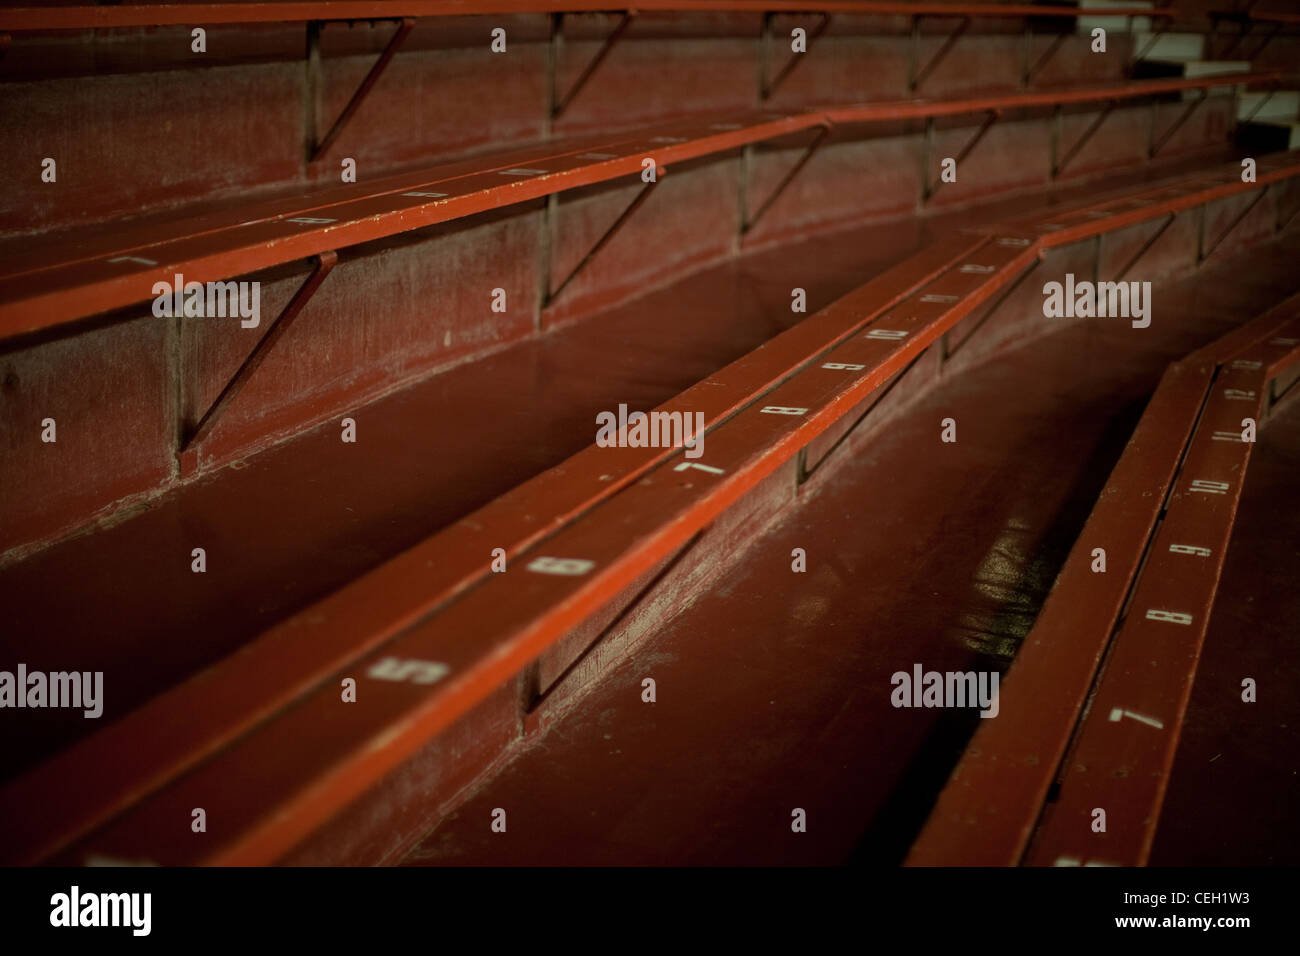 Empty bleachers with numbers marking place, seats in a large auditorium - Stock Image